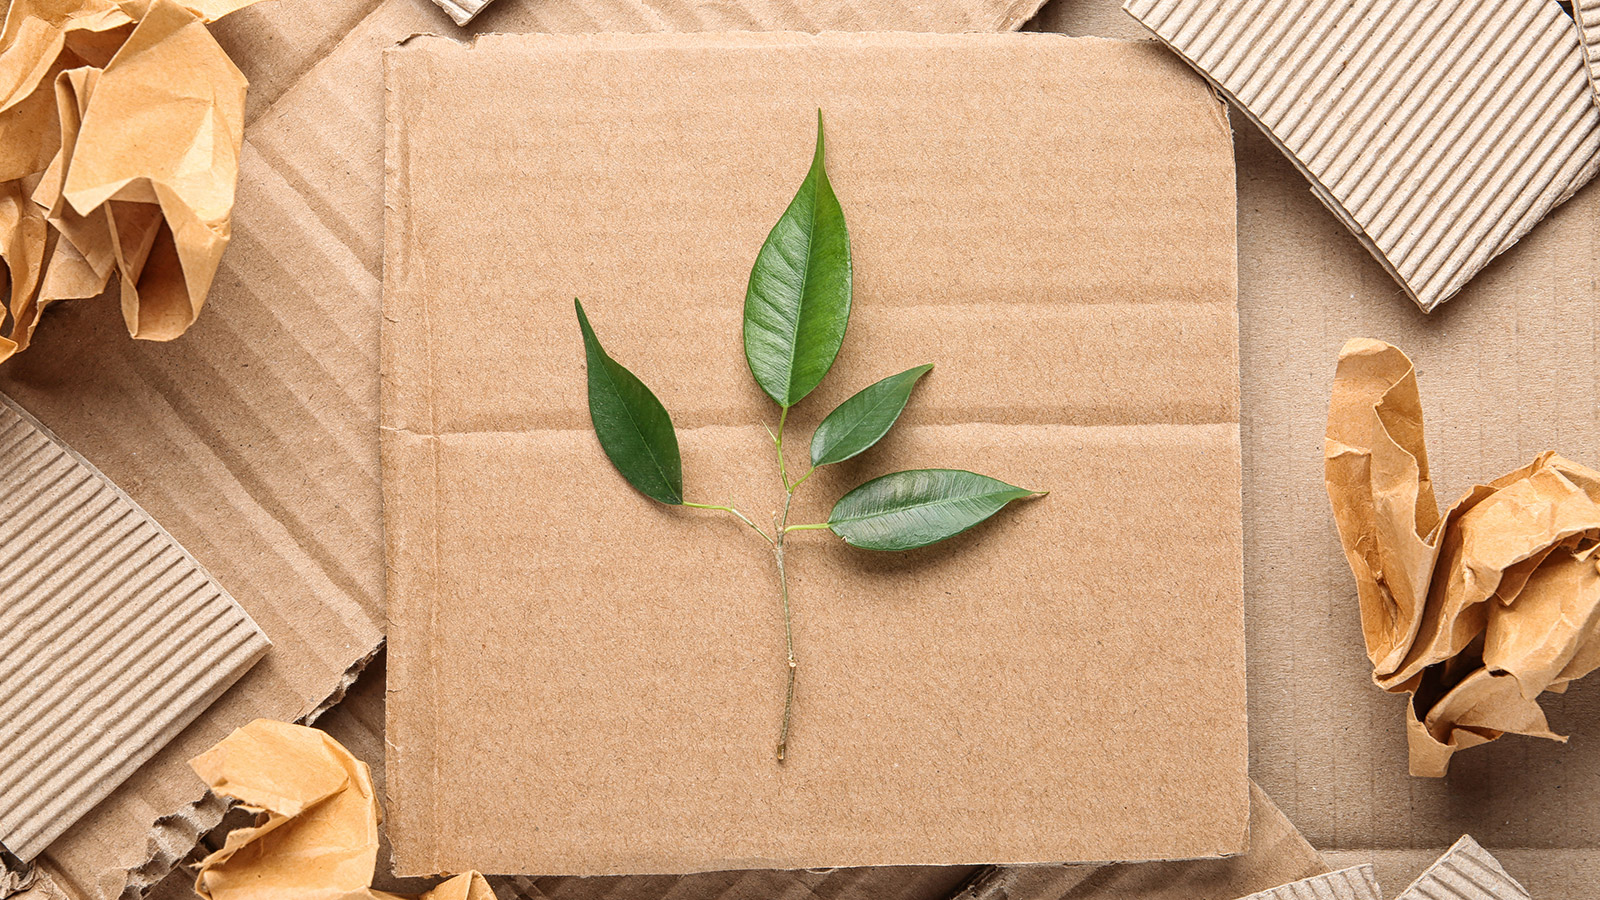 Flat lay composition with pieces of cardboard and green branch